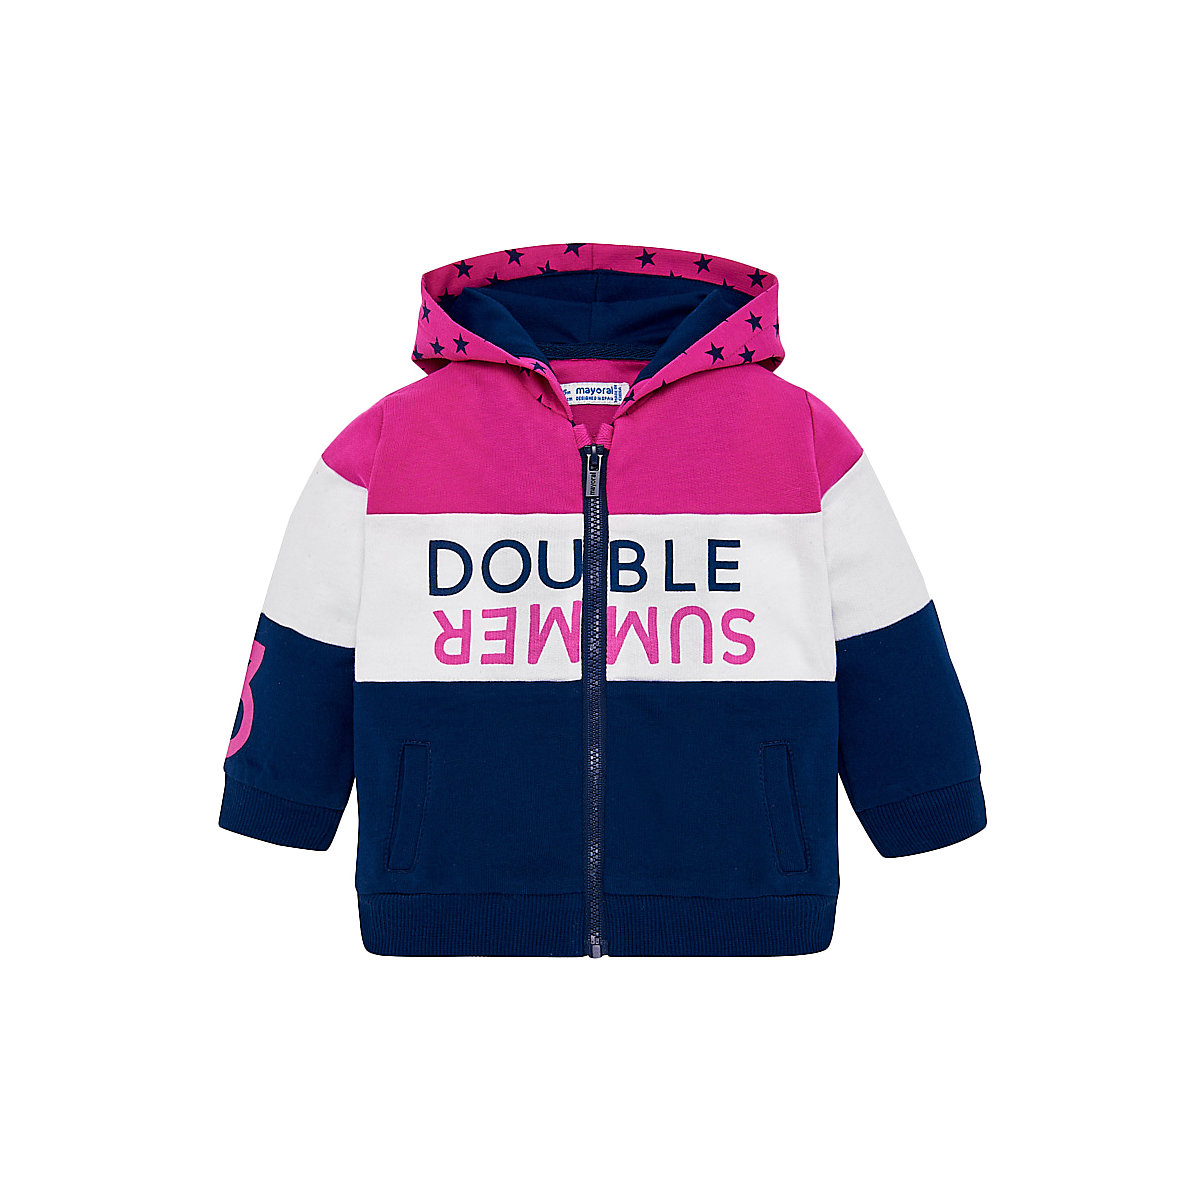 Фото - MAYORAL Hoodies & Sweatshirts 10693067 pullover jumper for boys and girls clothes children's sweatshirt Cotton Boys mayoral sweaters 10692403 pullover jumper for boys and girls jackets boys